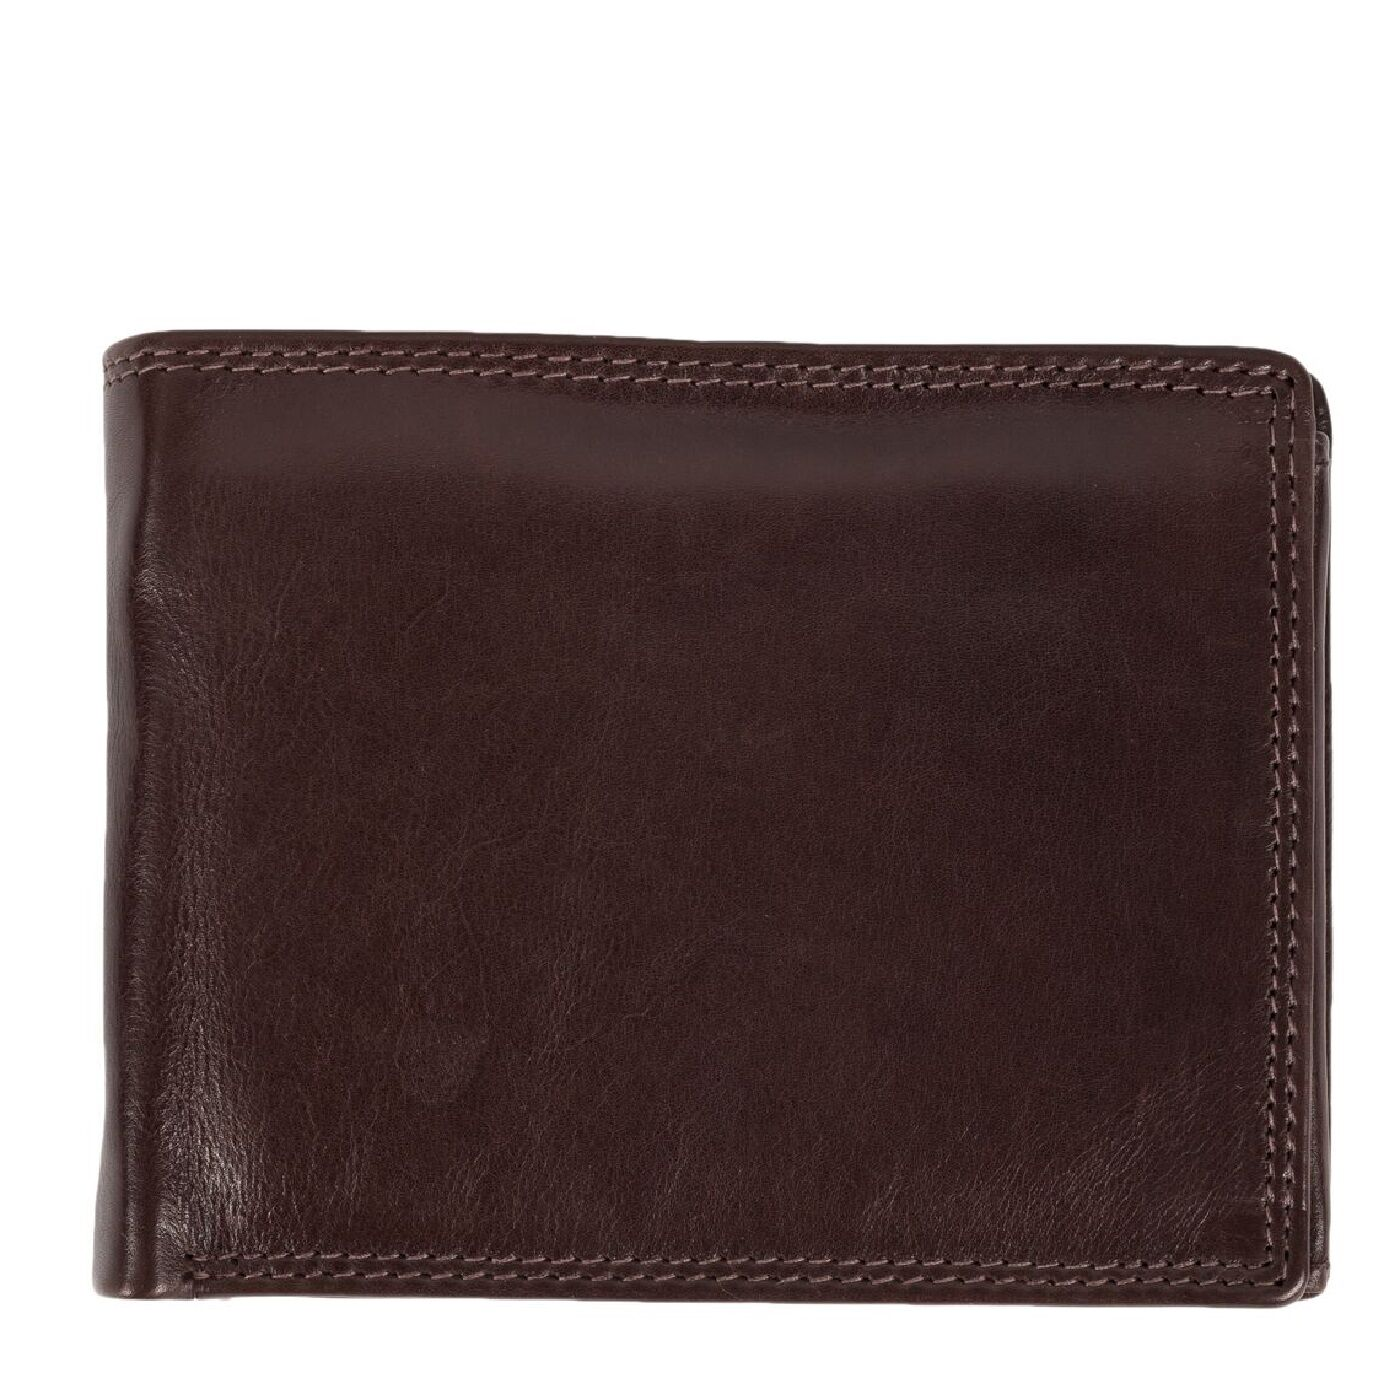 Eastern Counties Leather - Portefeuille Pliant Sam - Homme (Marron) - UTEL267